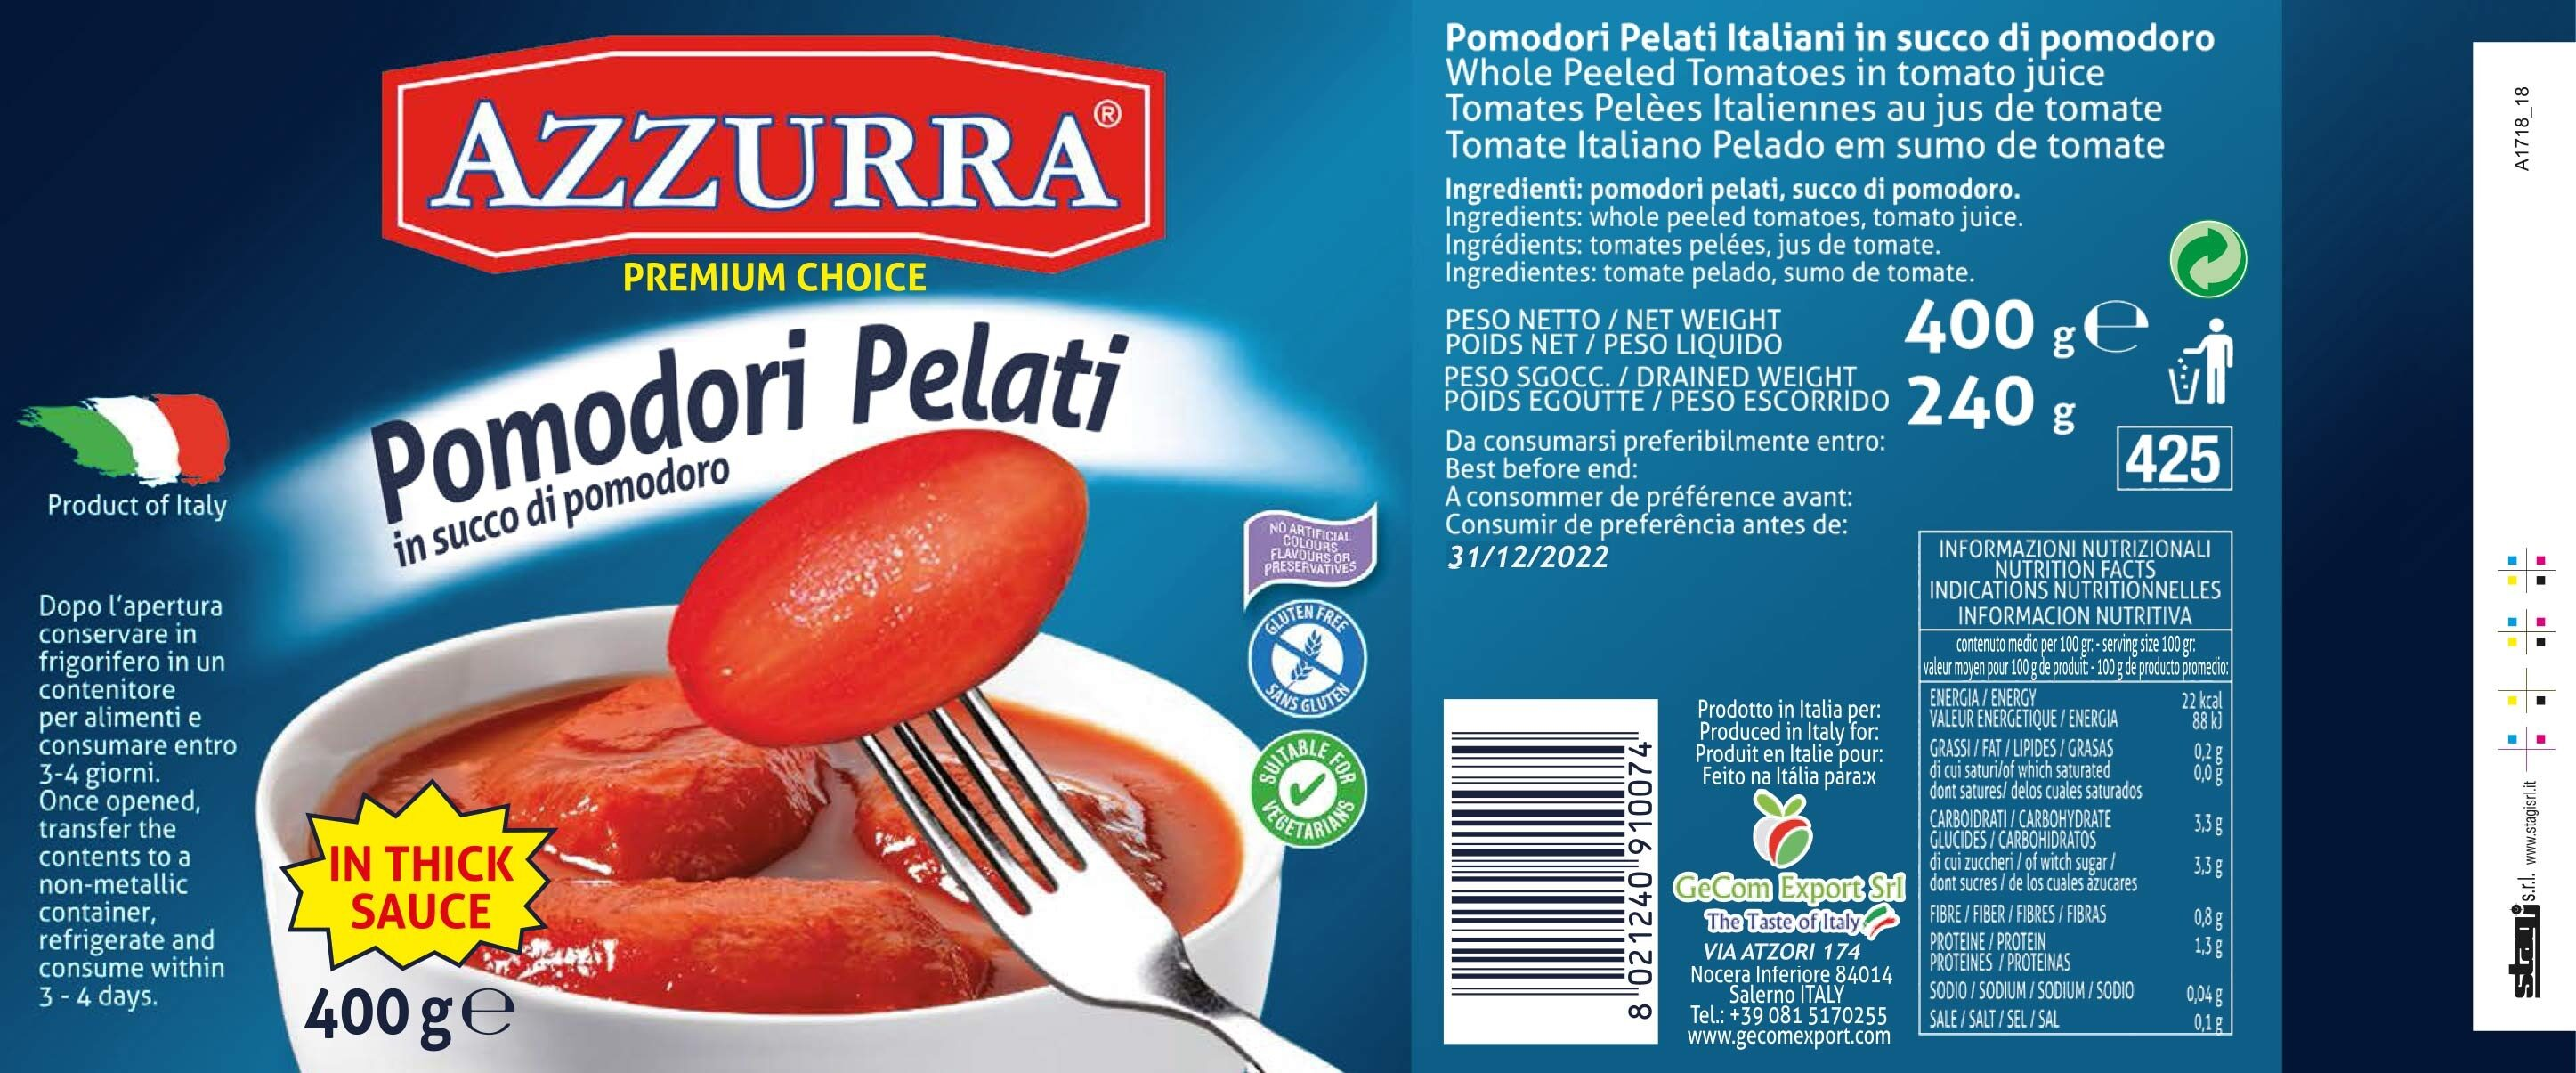 Whole Peeled Tomatoes in Tomato Juice - Product - en